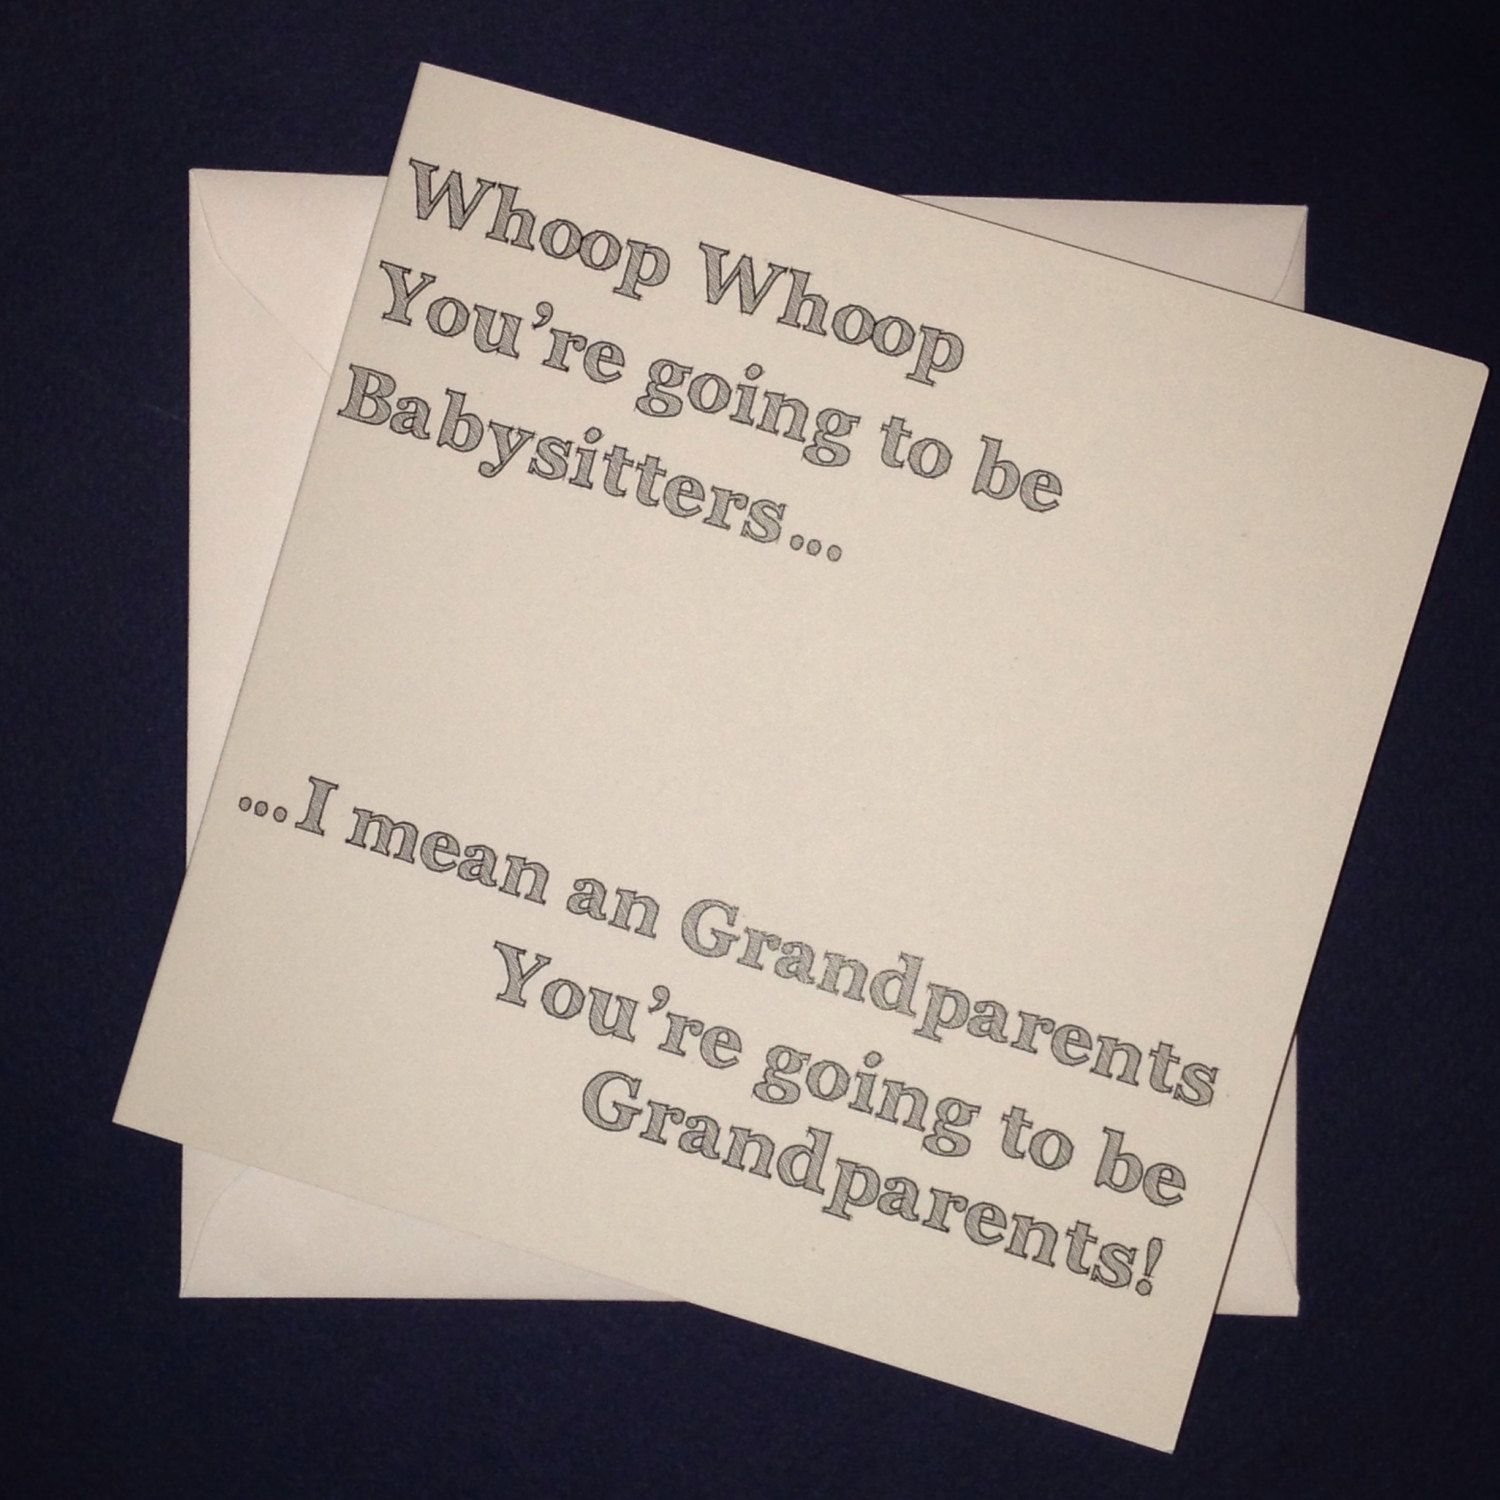 Grandparents Whoop whoop Youre going to be babysitters – Grandparents Announcement Baby